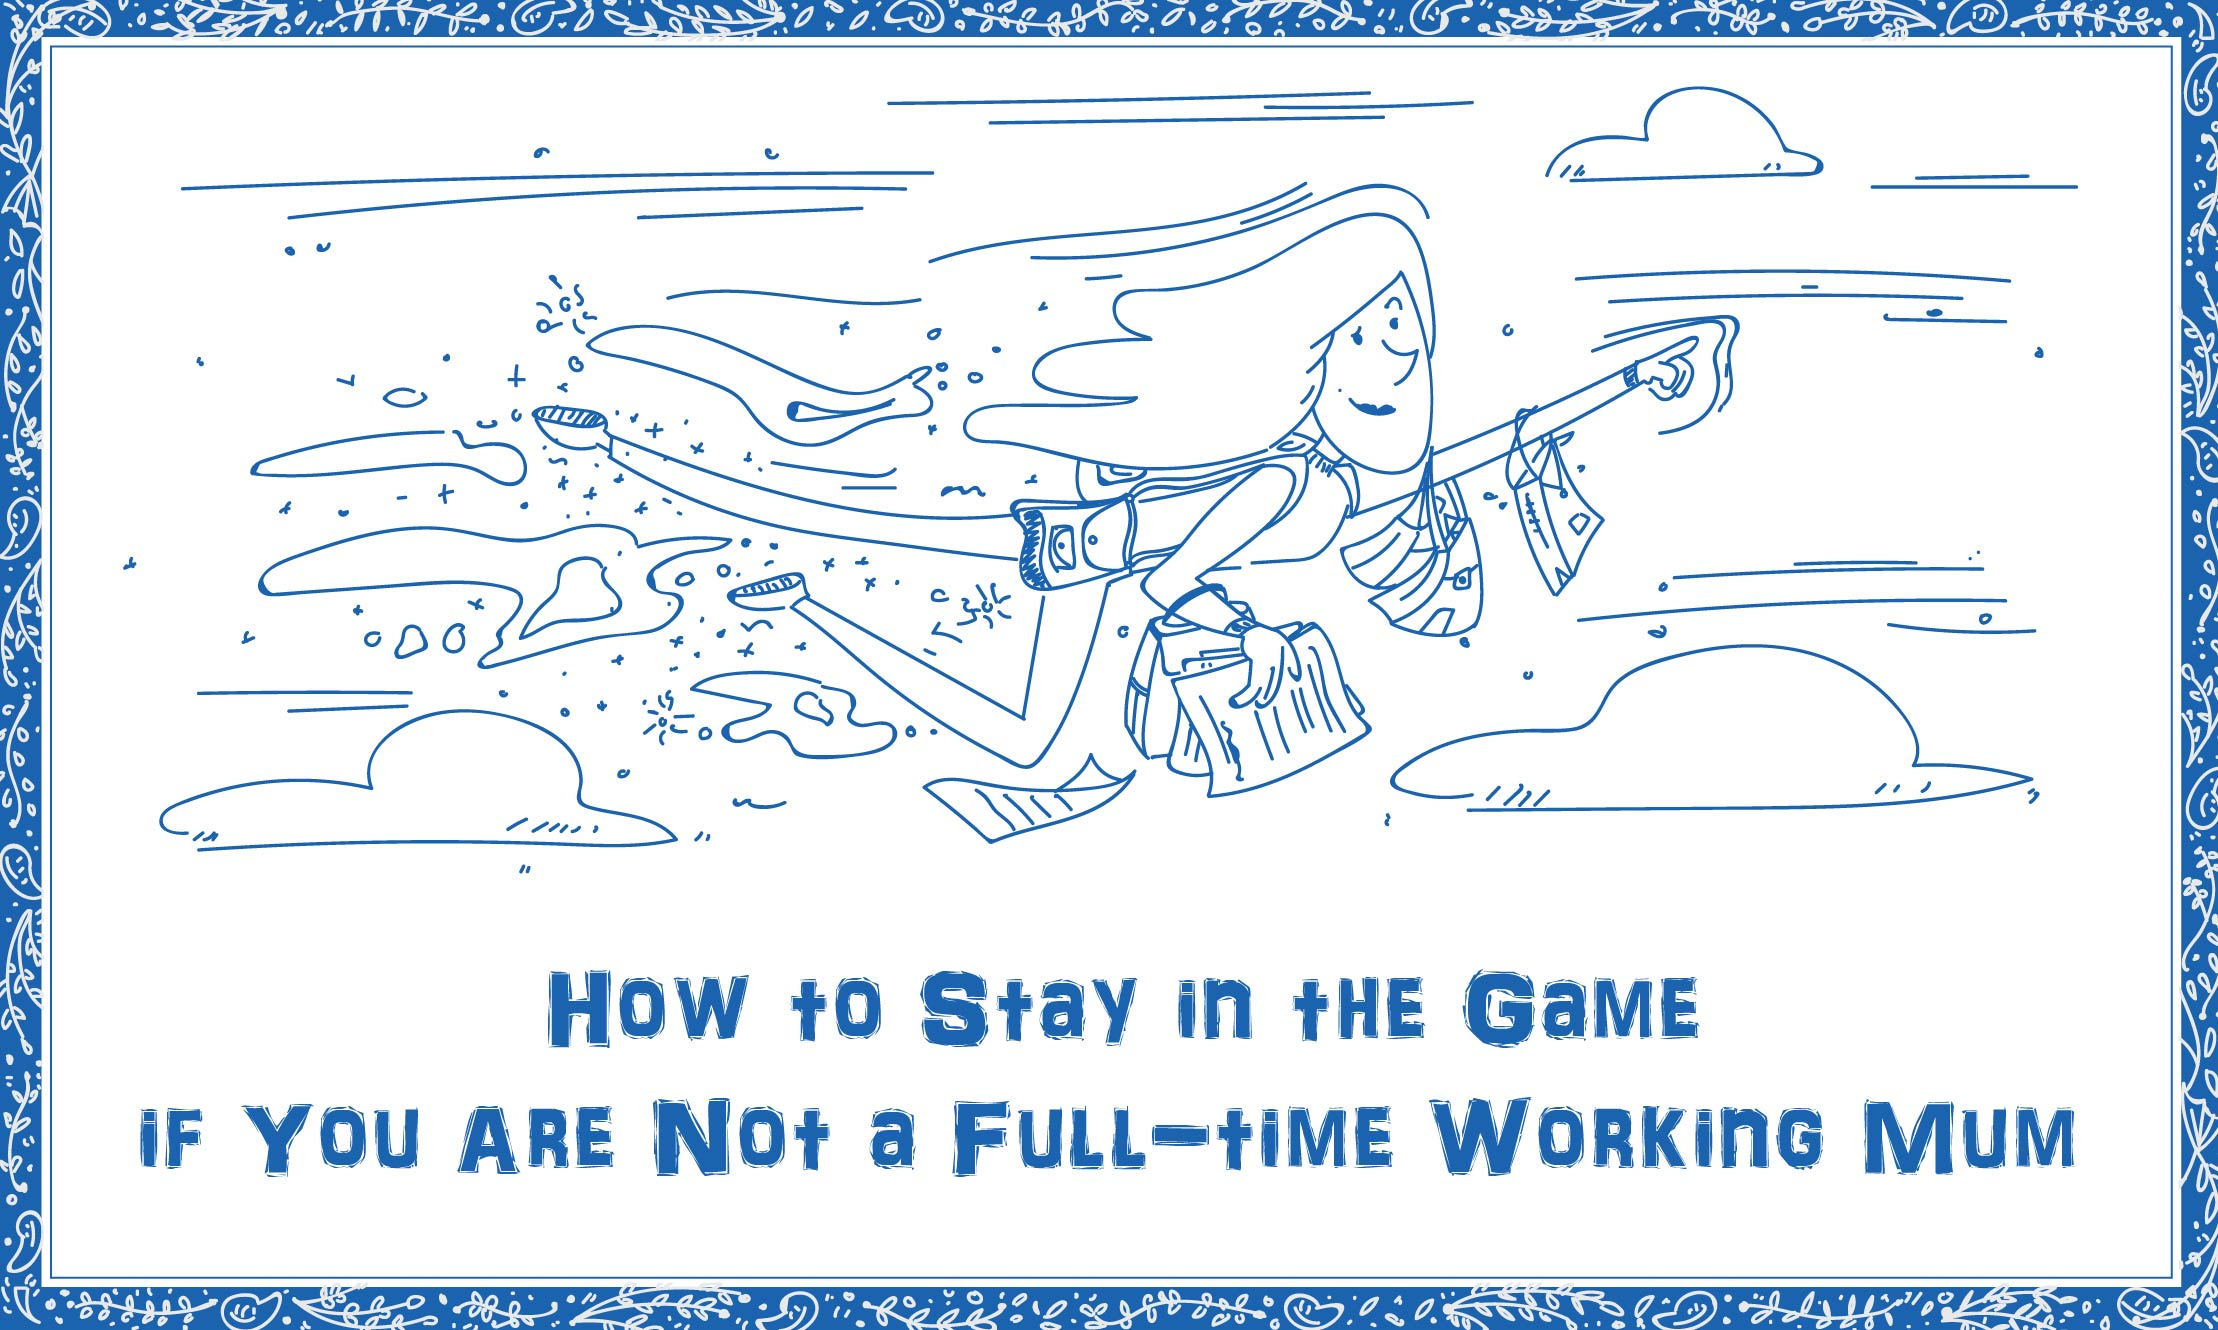 How to Stay in the Game Even Though you are not Working Full-time